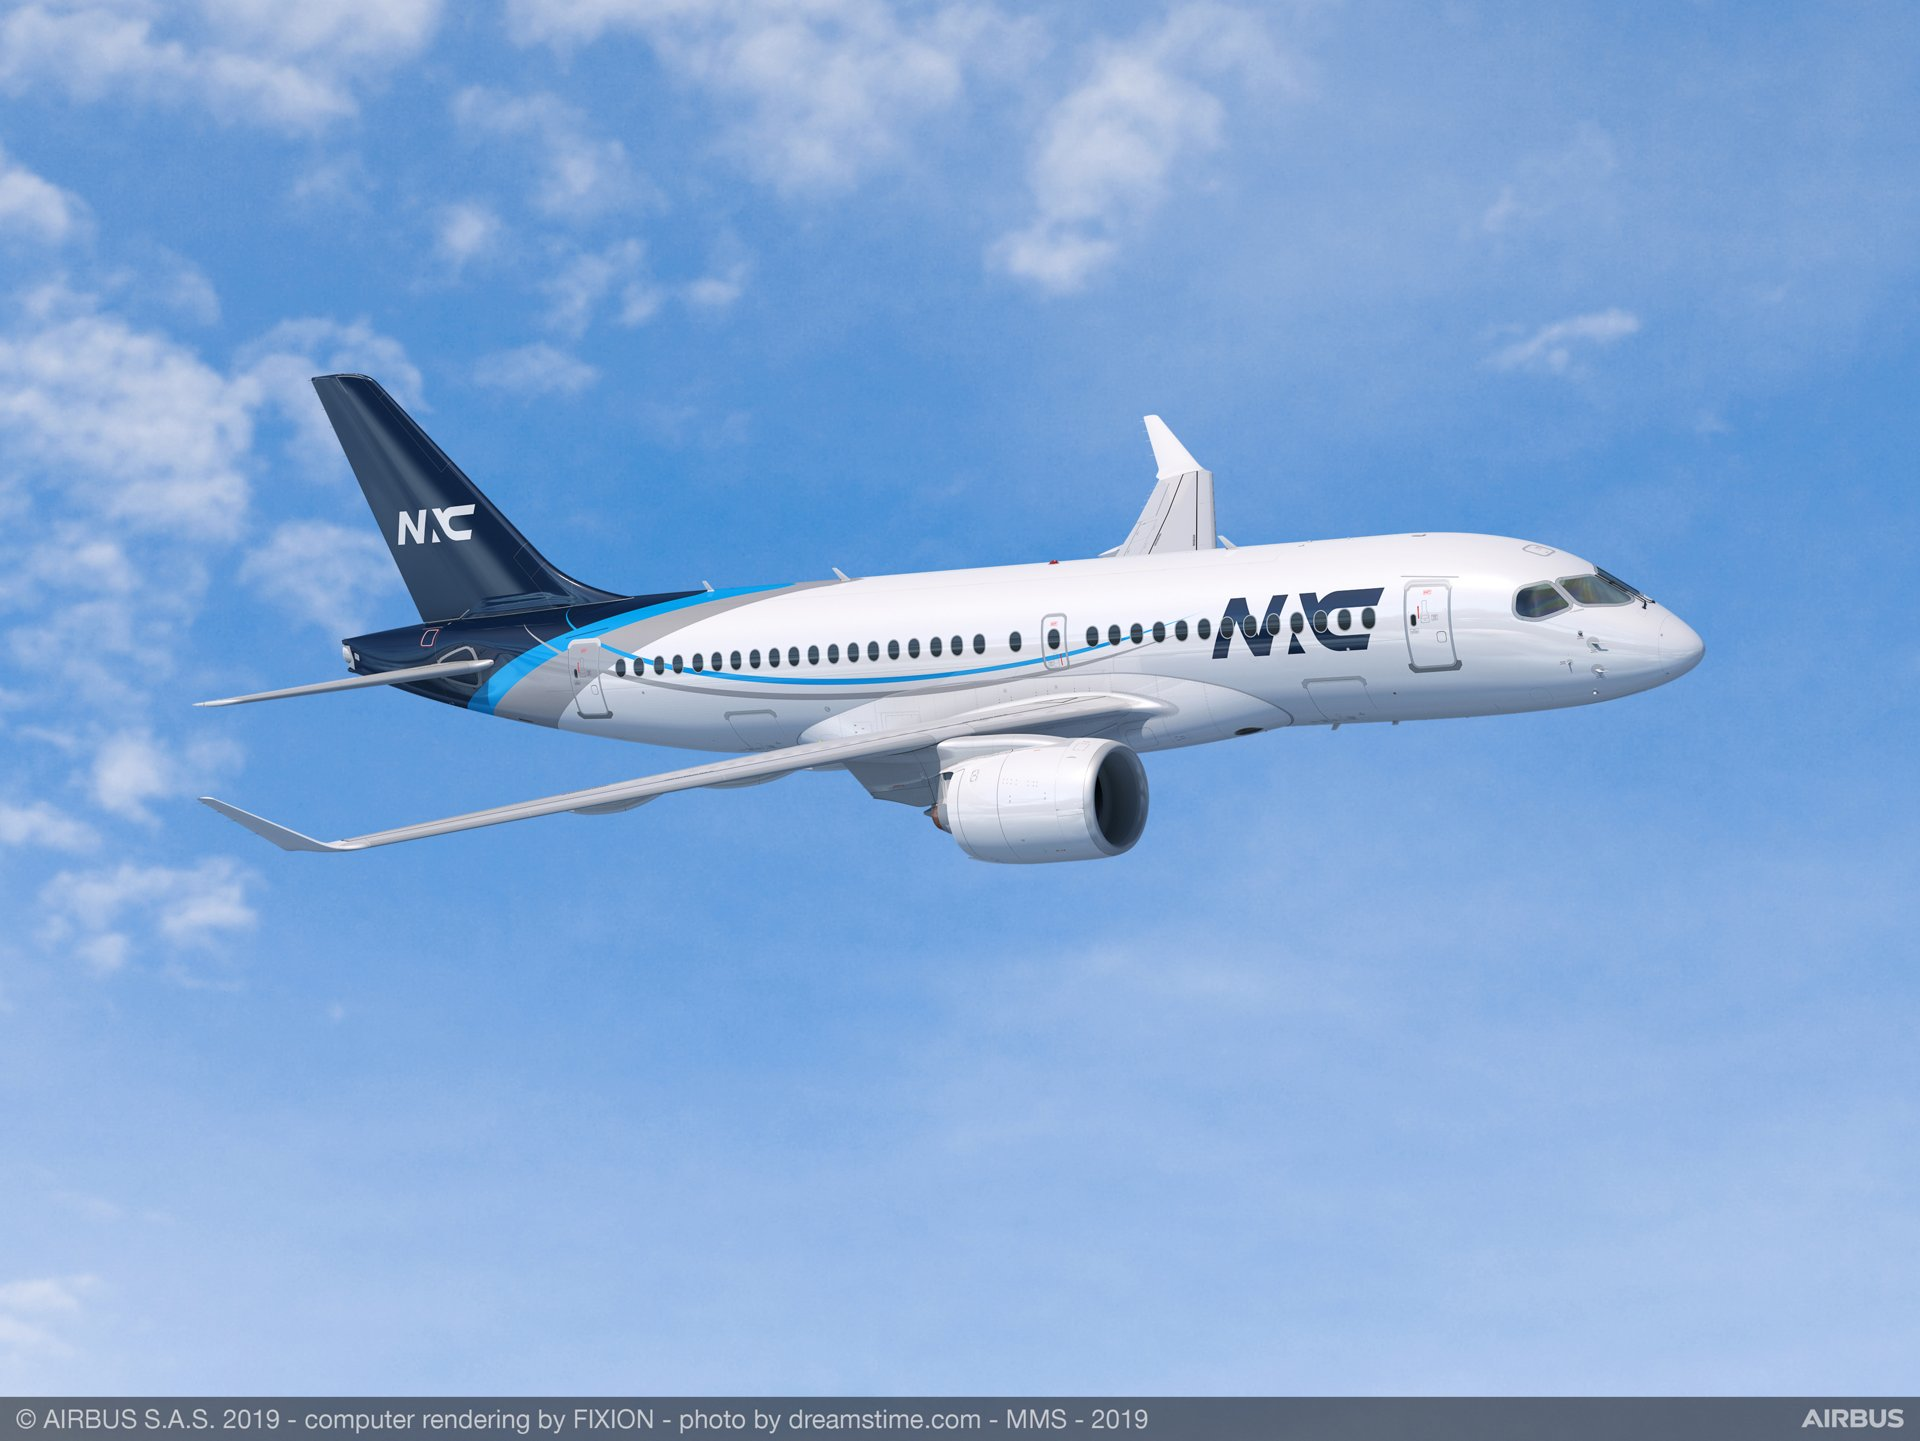 Nordic Aviation Capital (NAC) finalised its order for 20 A220 Family aircraft at the end of 2019